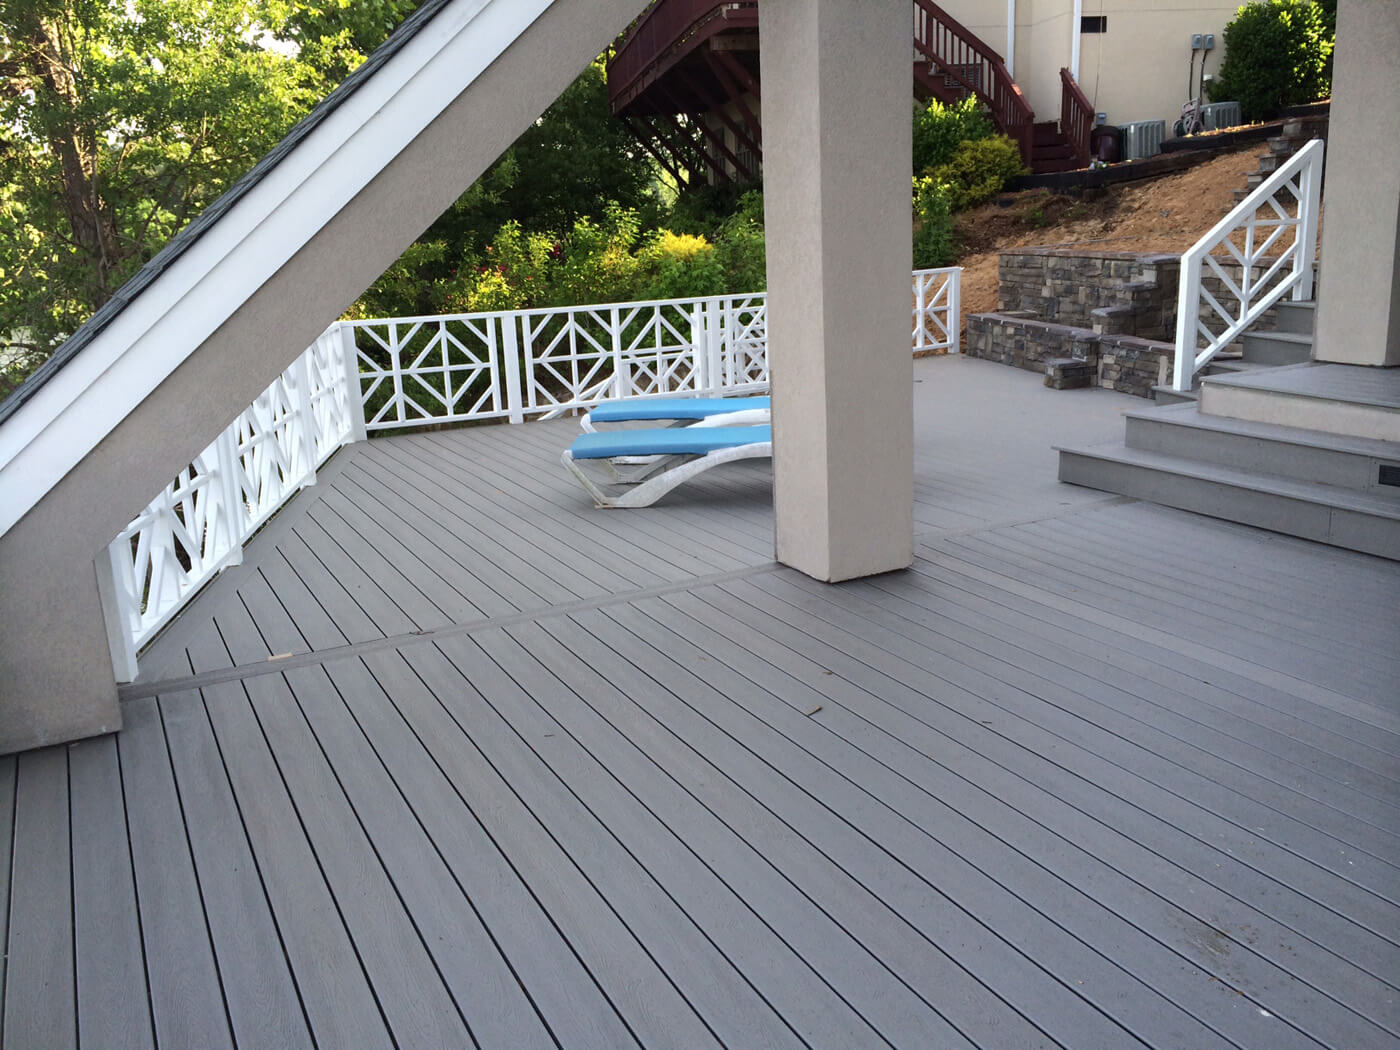 wood deck with lounge chairs